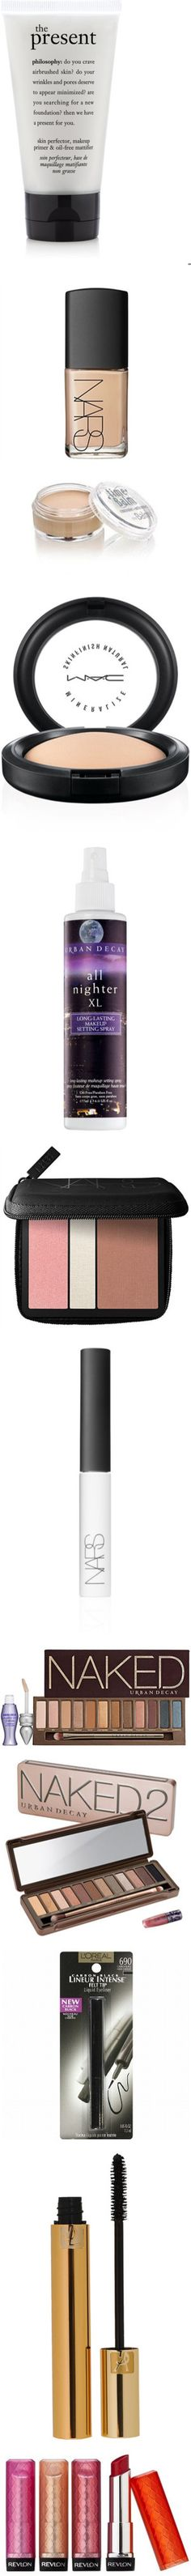 """""""Get The Look: My Everyday Natural Makeup Routine"""" by volleyballchick ❤ liked on Polyvore"""